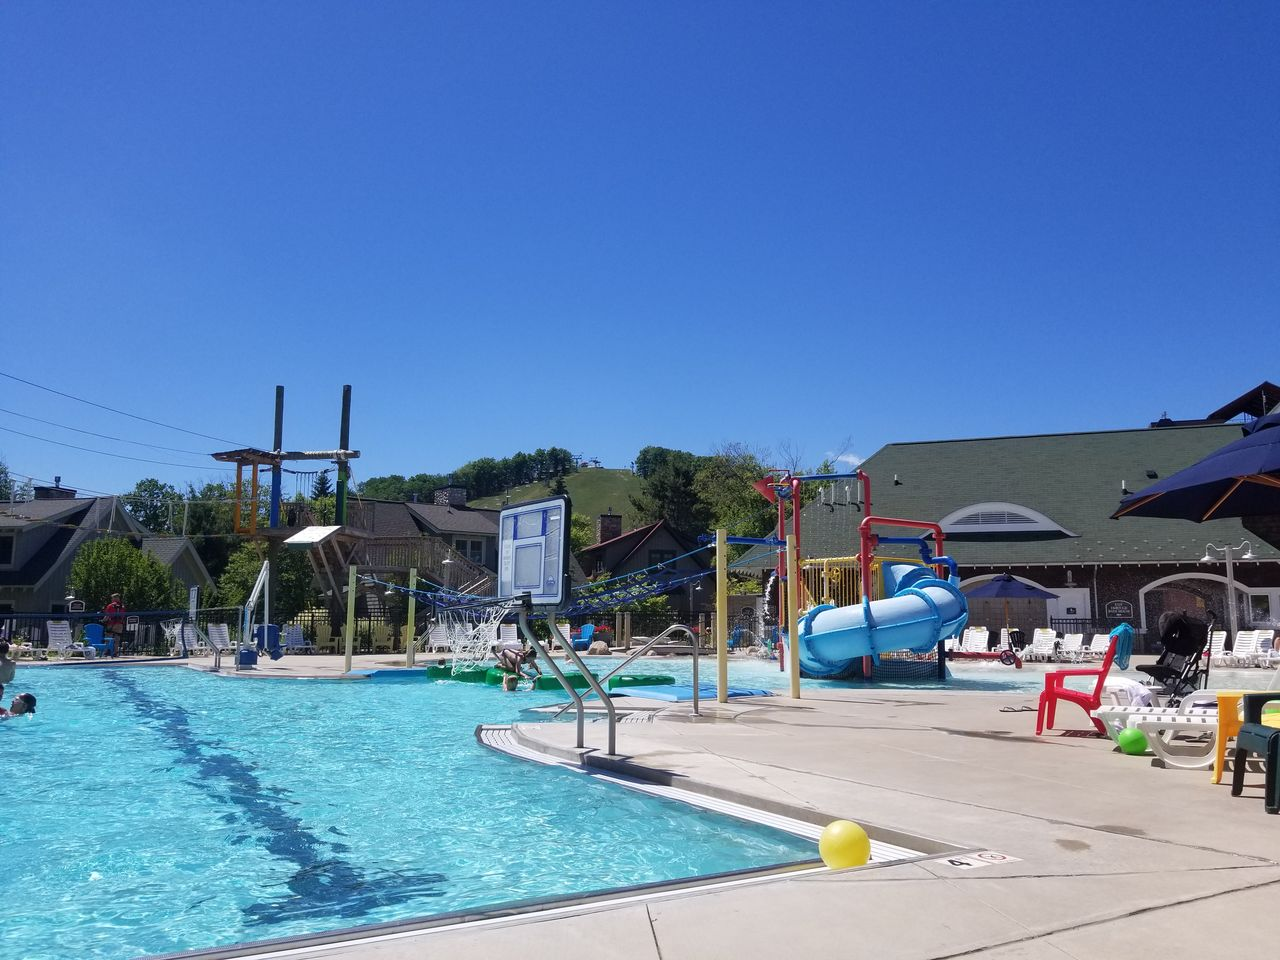 The outdoor swimming area at Crystal Mountain